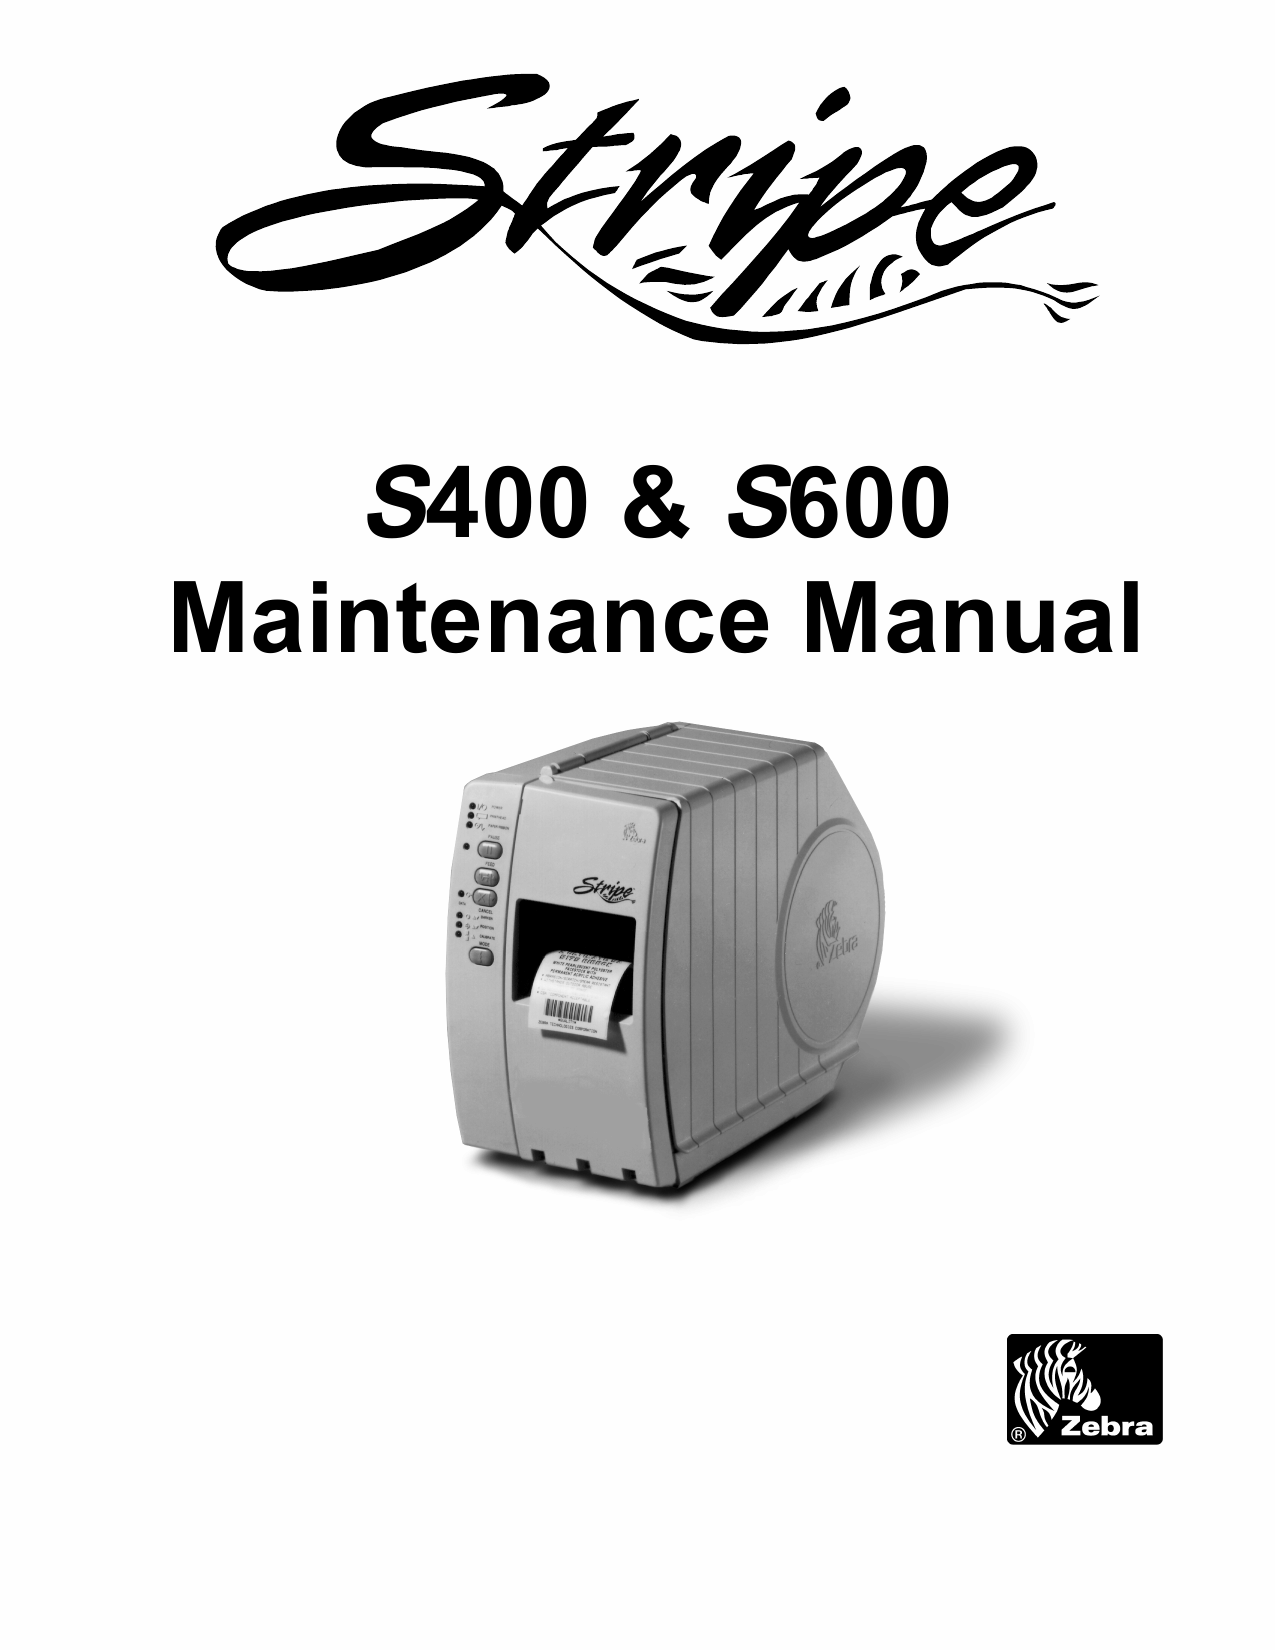 Zebra Label S400 S600 Maintenance Service Manual-1